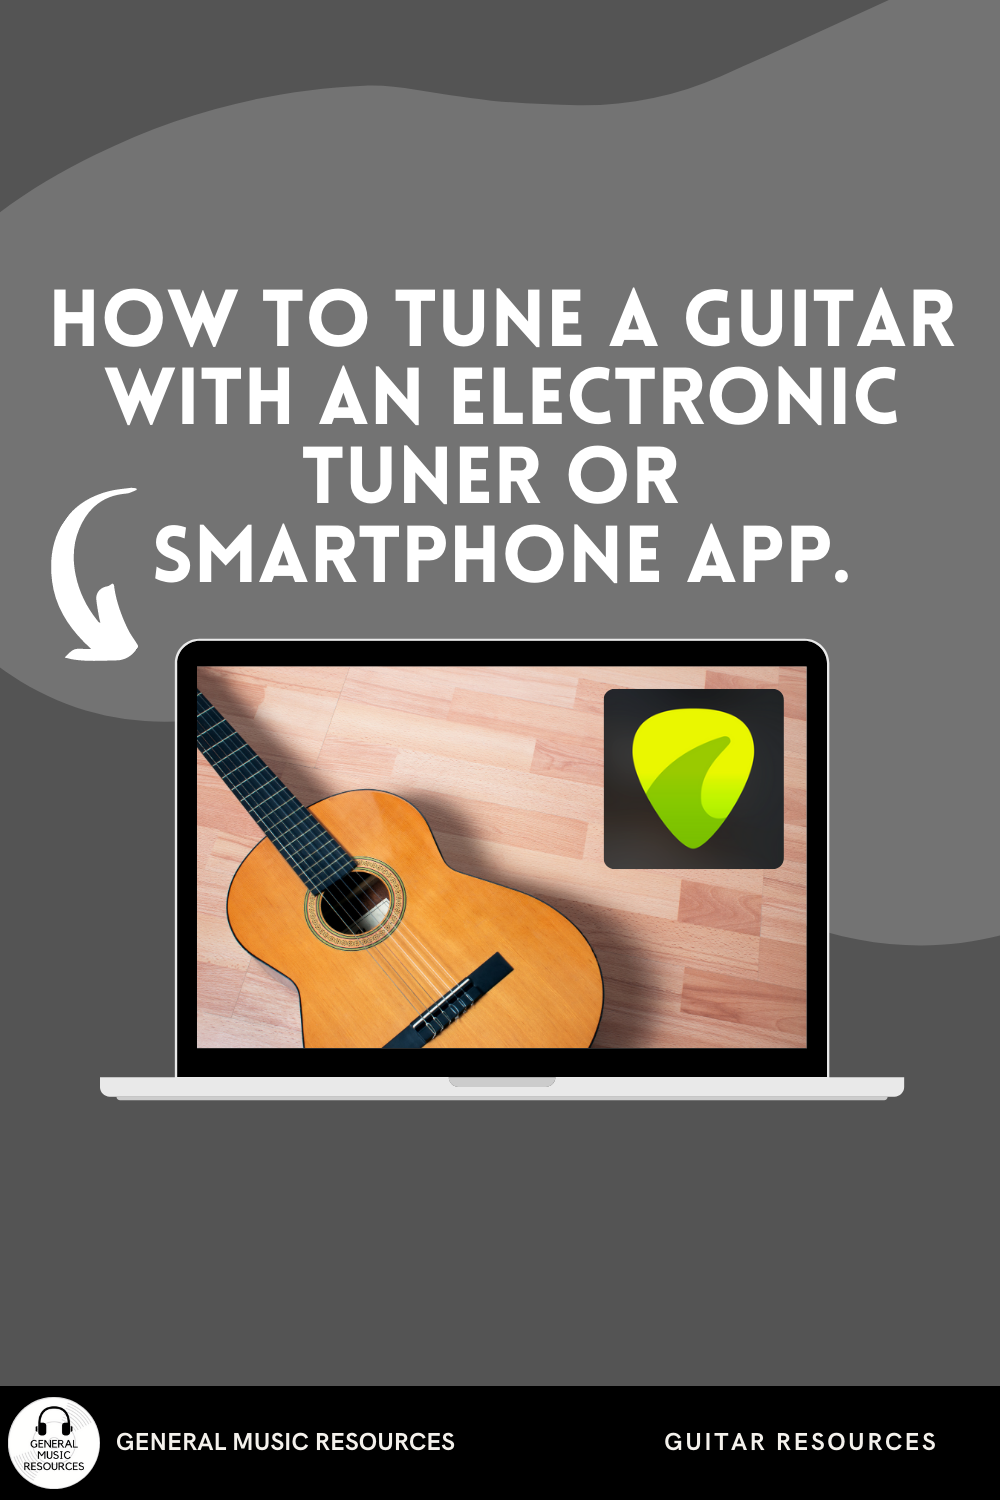 How To Tune A Guitar With An Electronic Tuner Smartphone App Digital Handout Electronic Tuners Smartphone Apps Tuner